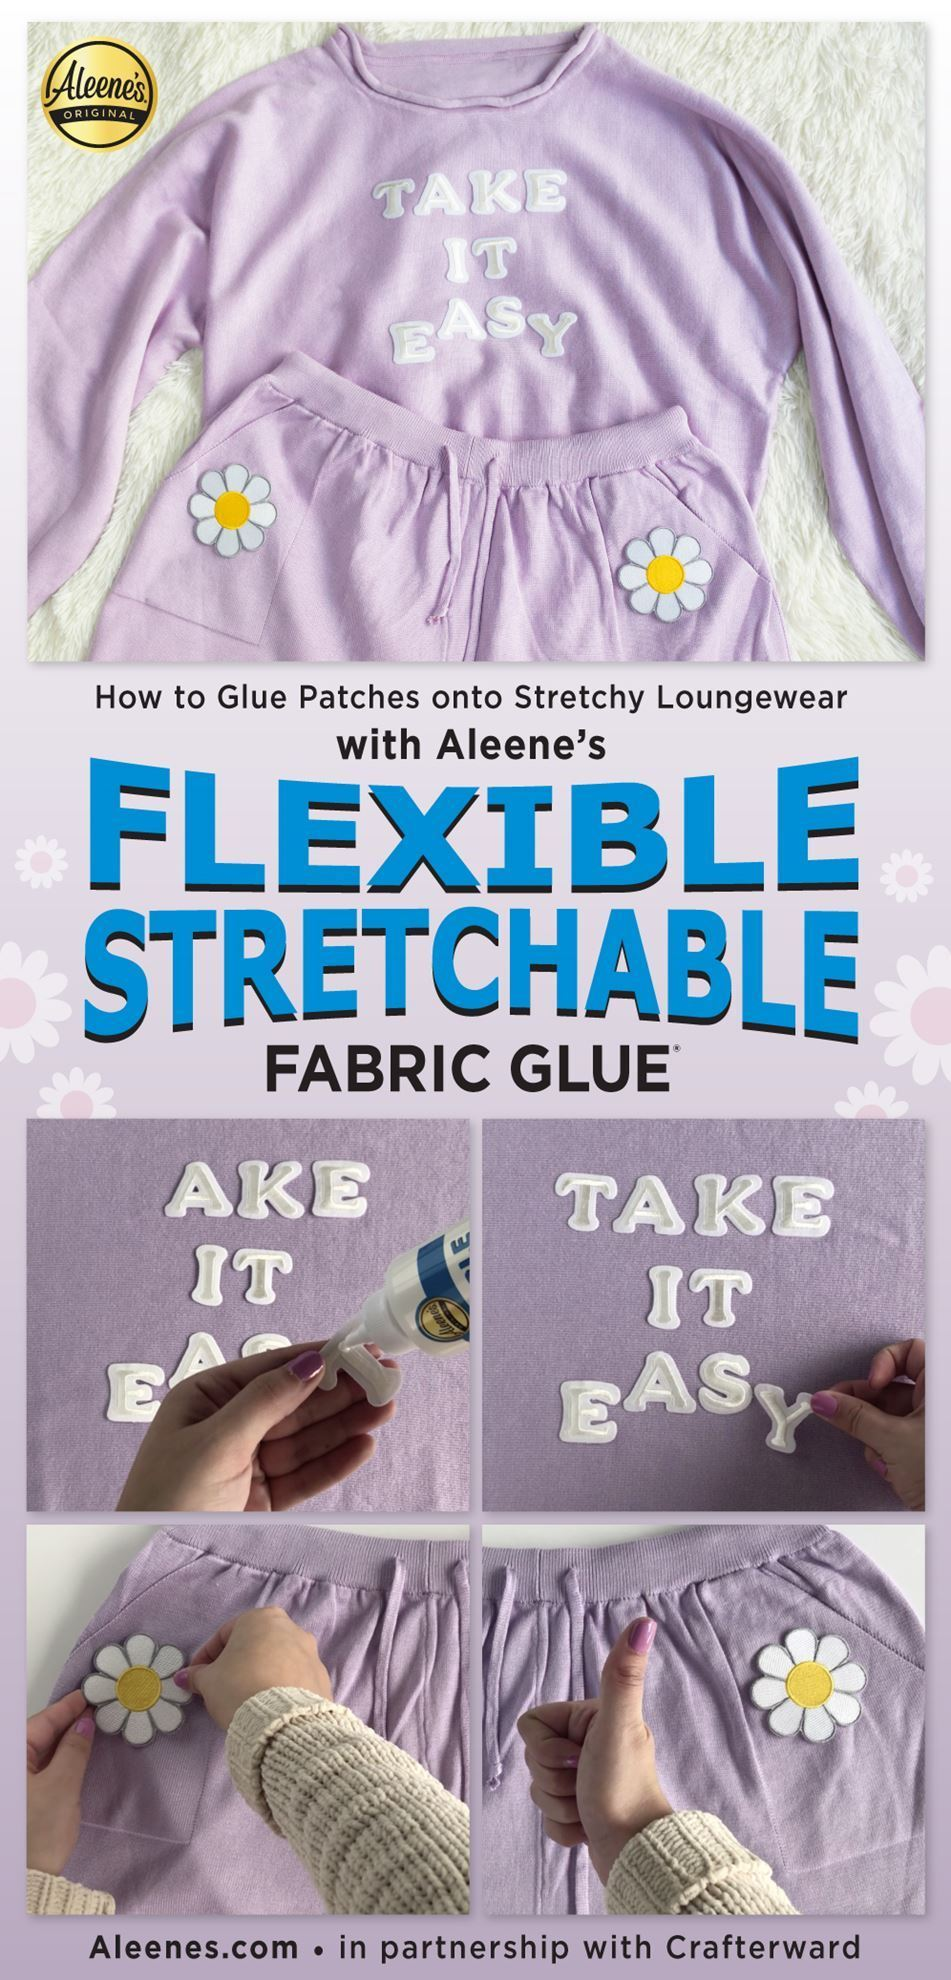 How to Glue Patches on Stretchy Loungewear with Fabric Glue